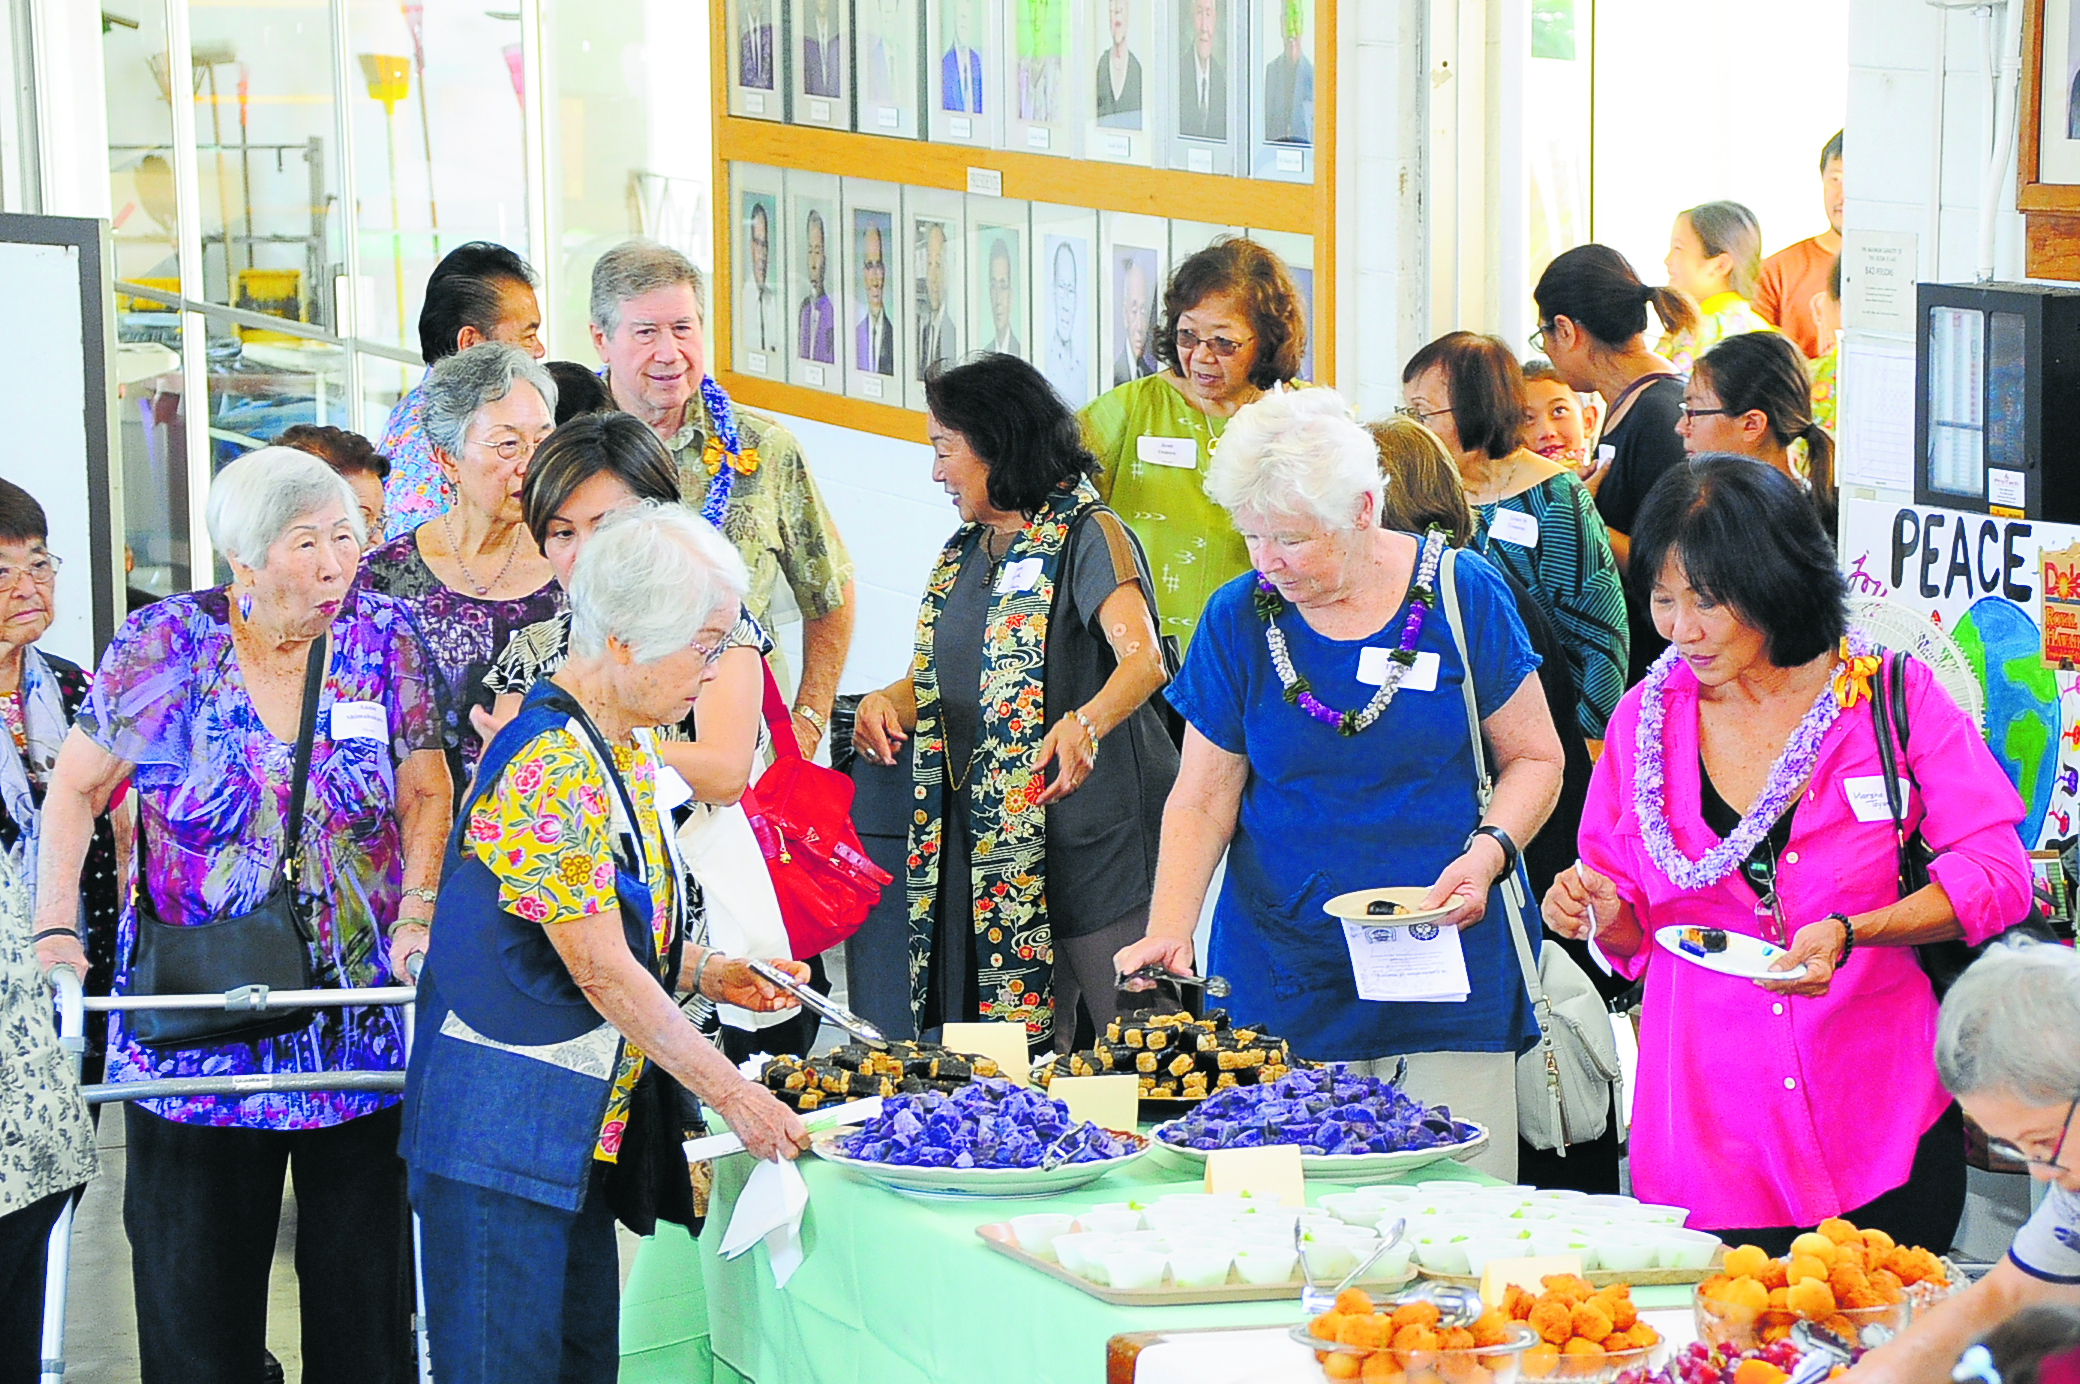 After the service, everyone was invited to enjoy the homemade refreshments that were provided in the Okinawa Memorial Hall adjacent to the temple. It was also an opportunity to enjoy the fellowship and to learn about the Okinawan Restaurant Project.